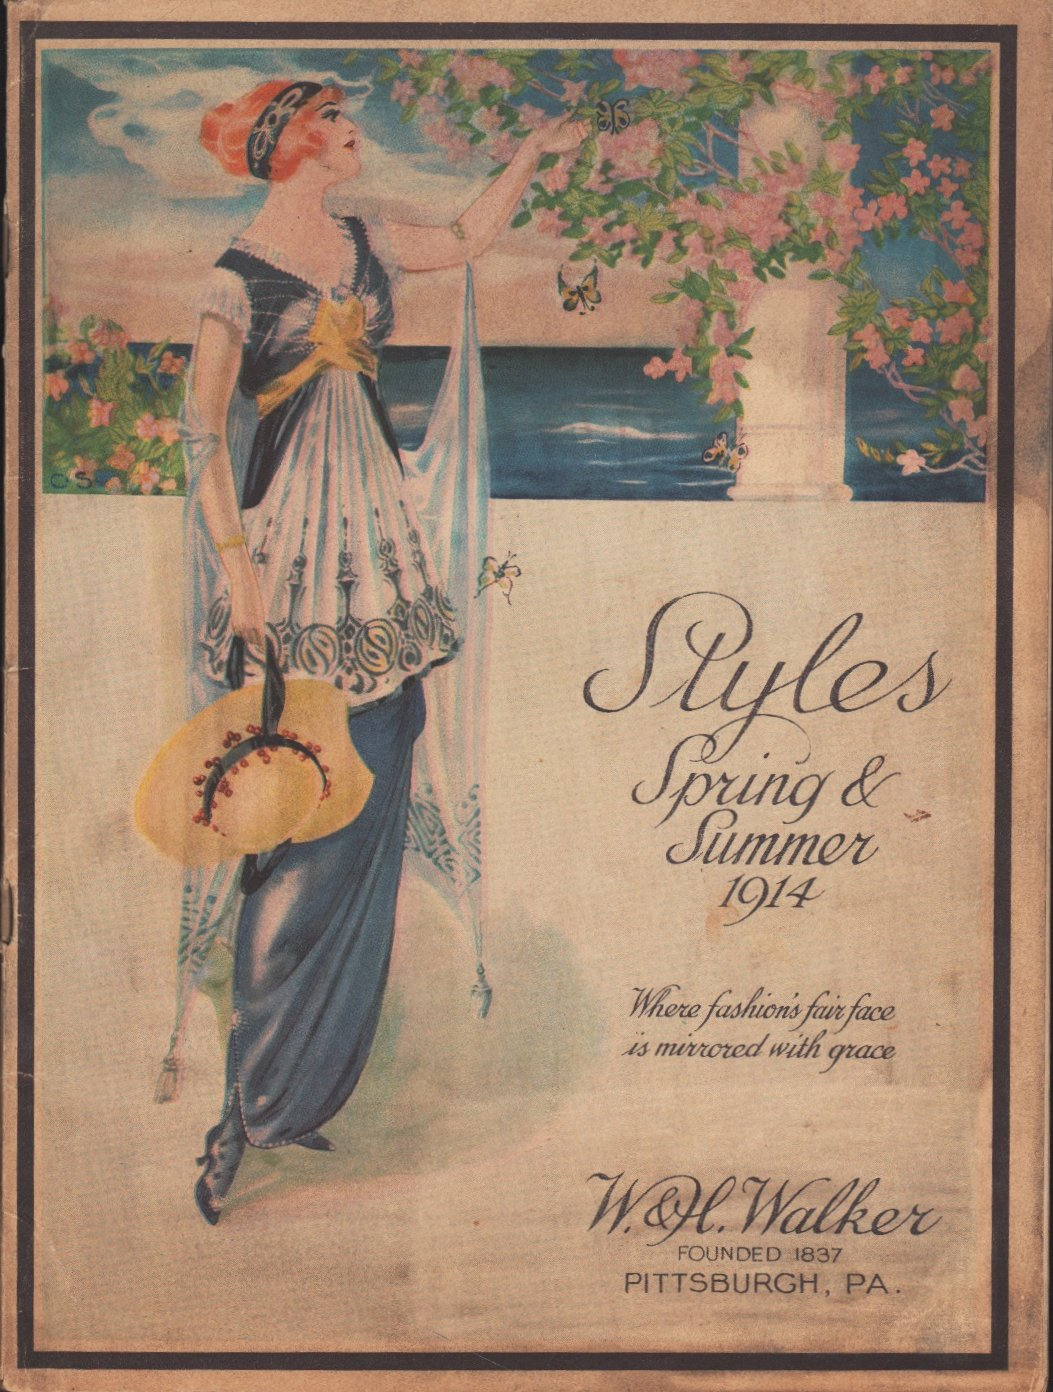 Image for Styles Spring & Summer 1914 Where fashion's fair face is mirrored with grace